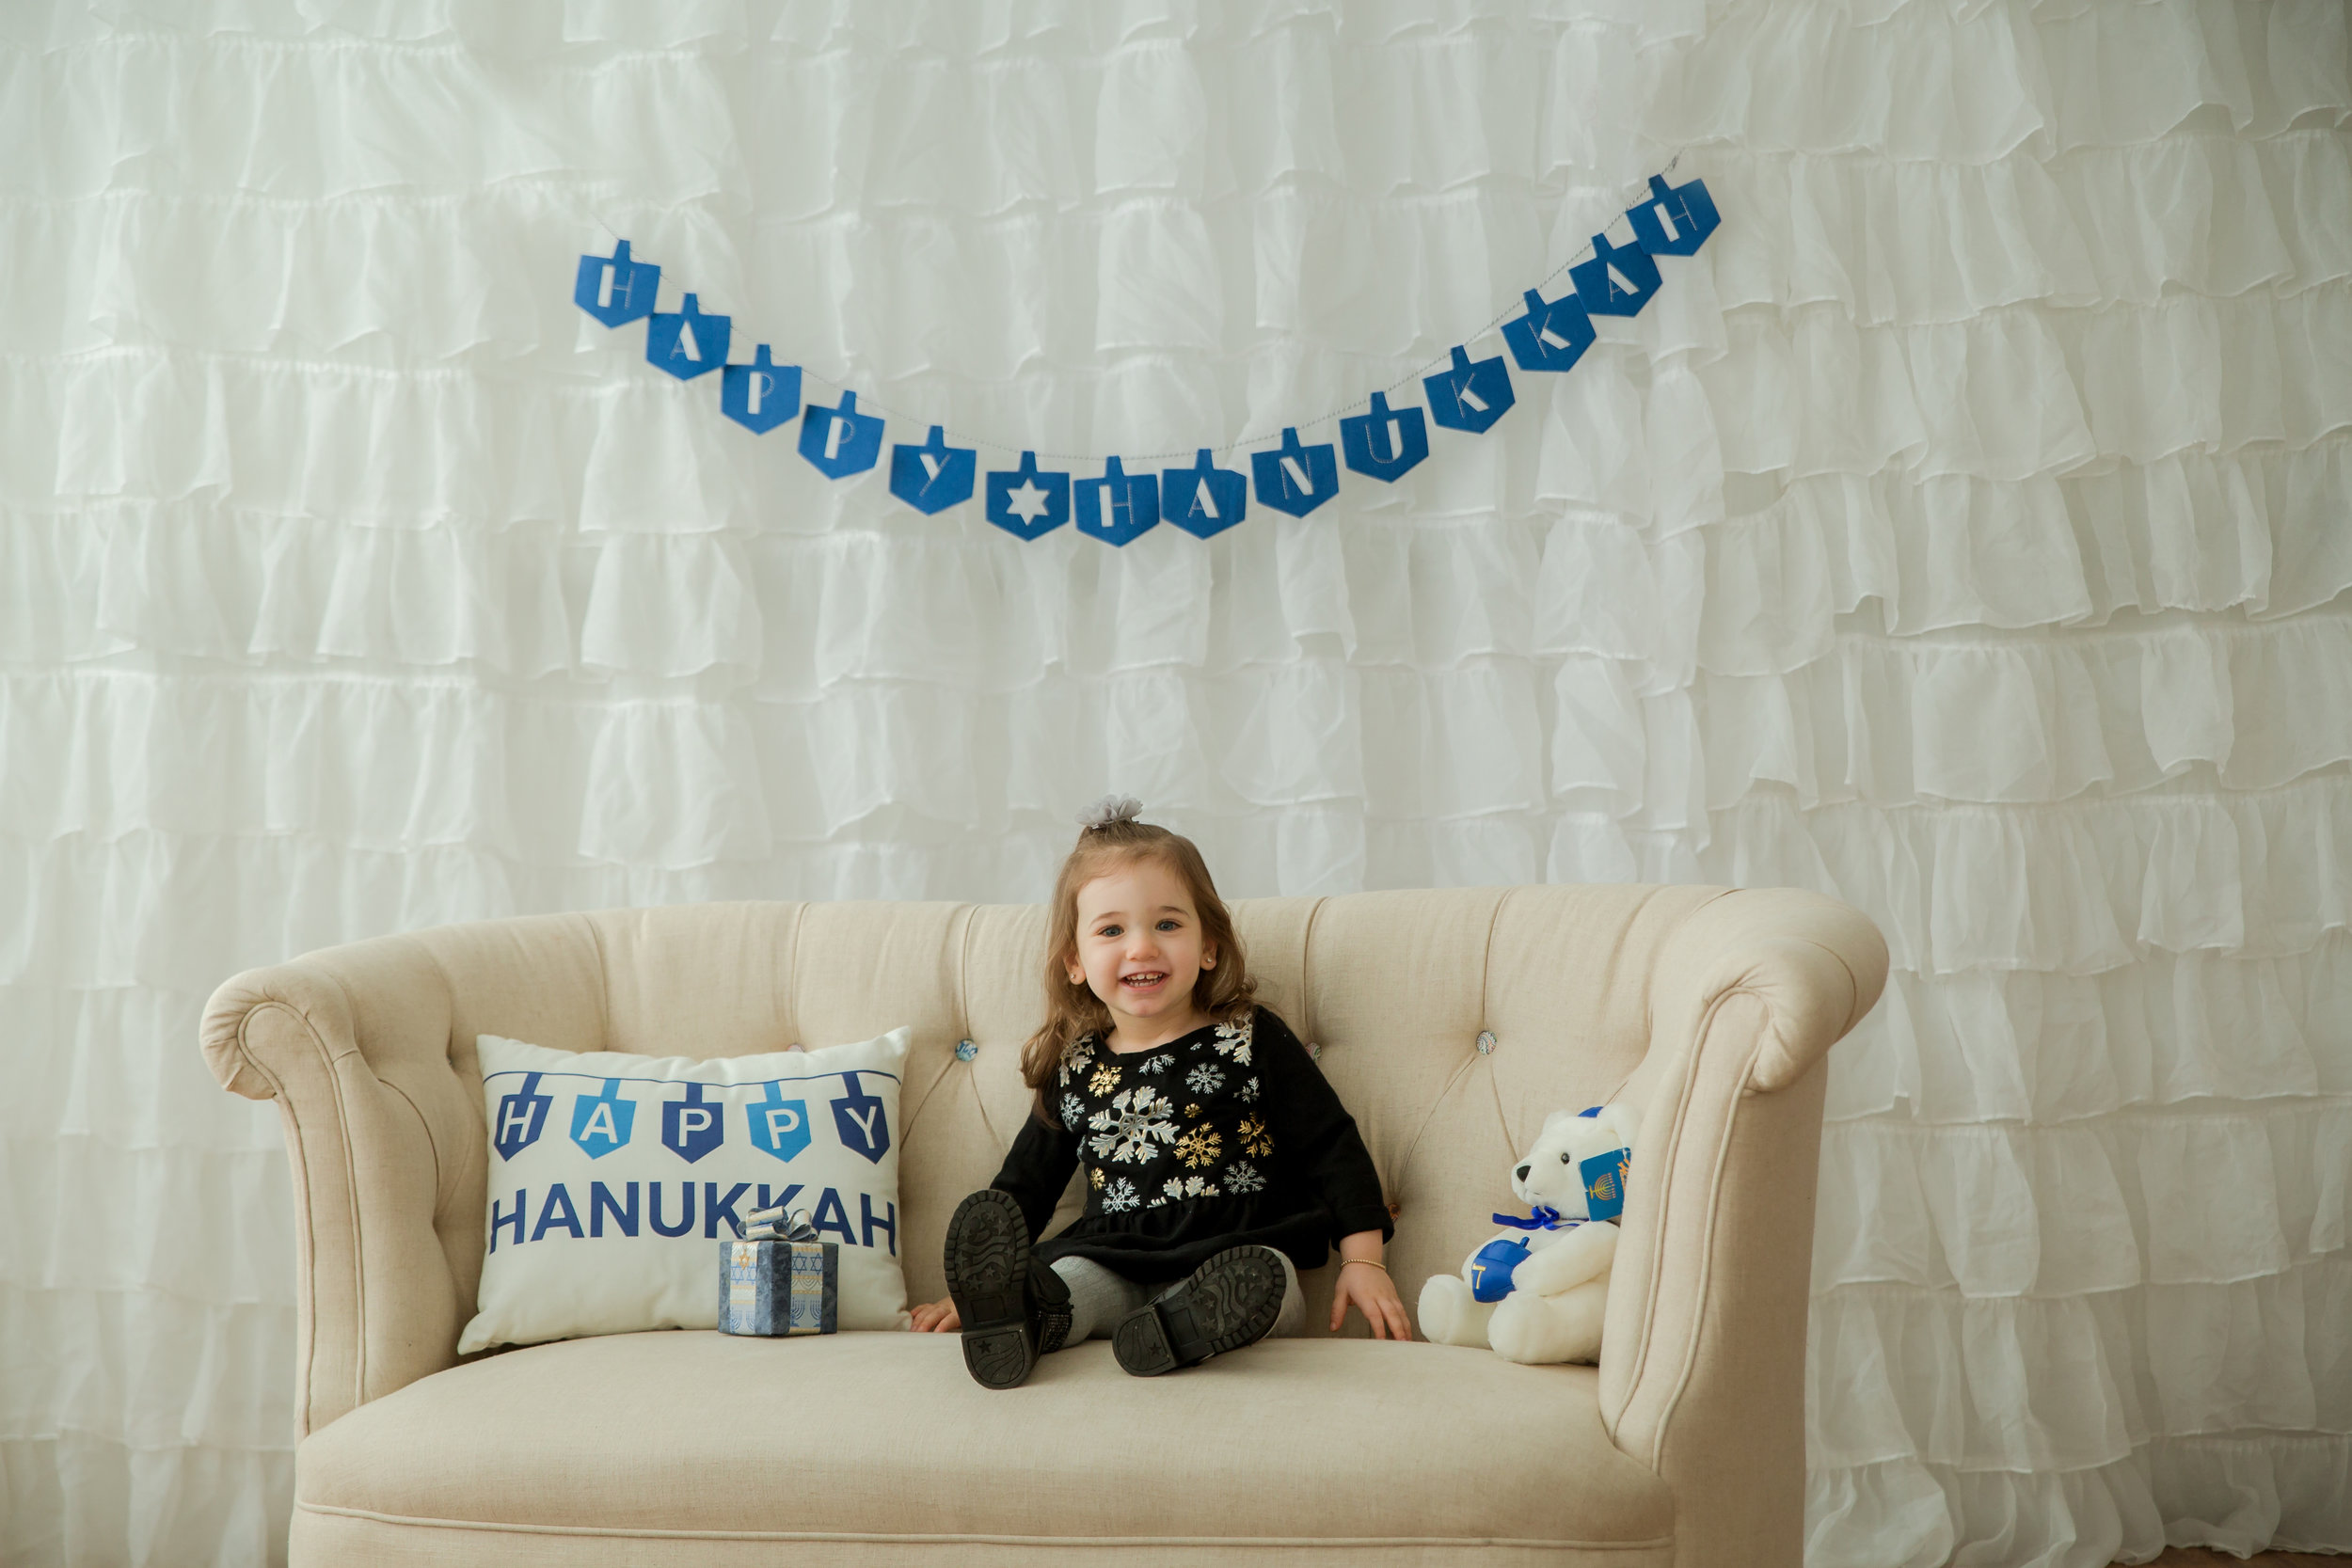 little girl wearing a black shirt with snowflakes smiling